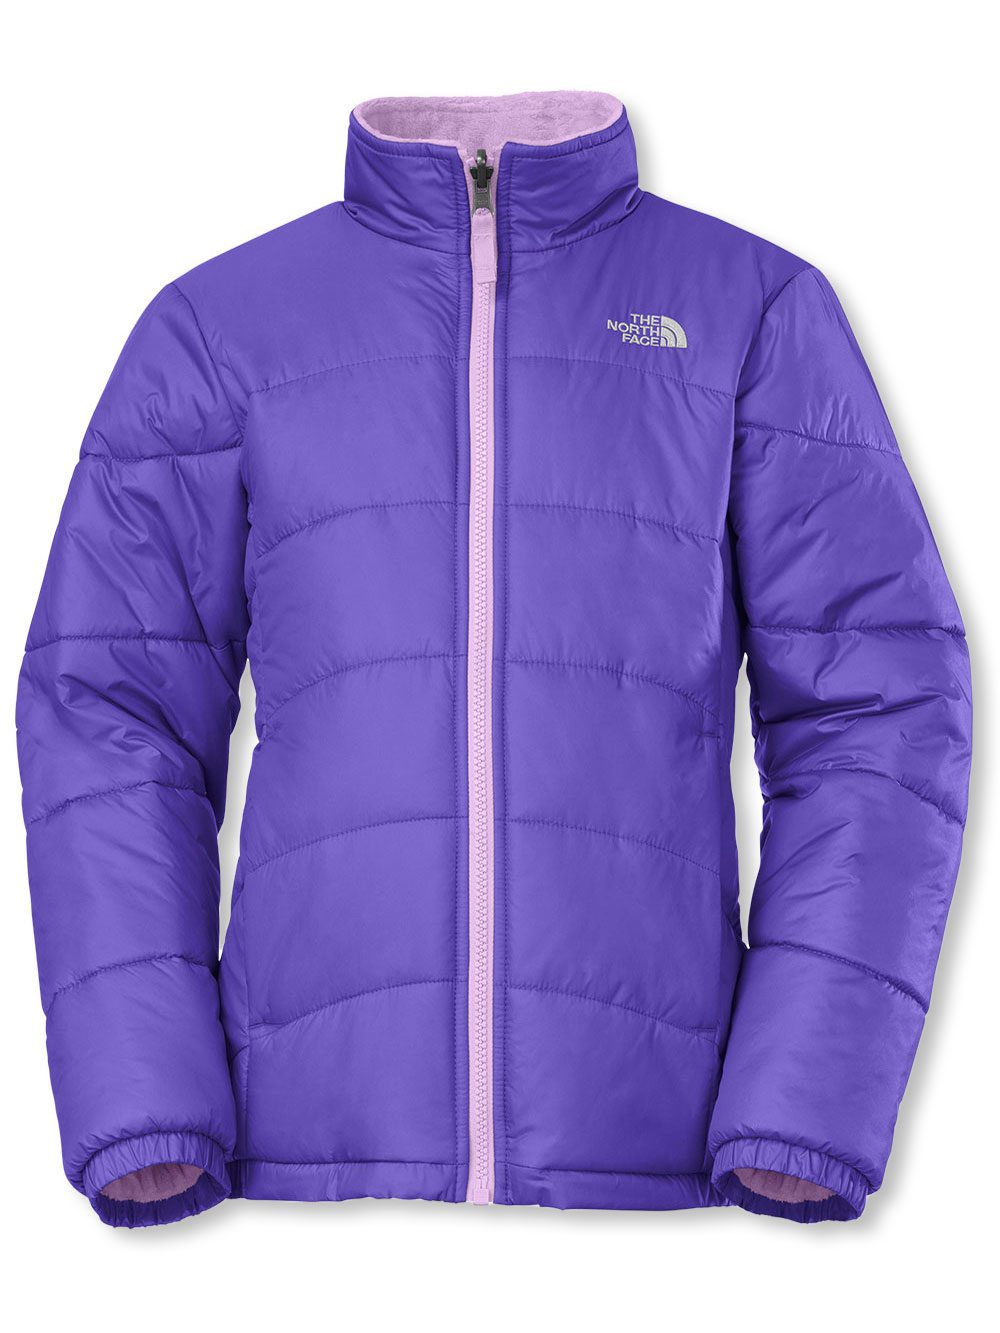 The North Face Big Girls' Abbit Triclimate Jacket (Sizes 7 - 16)